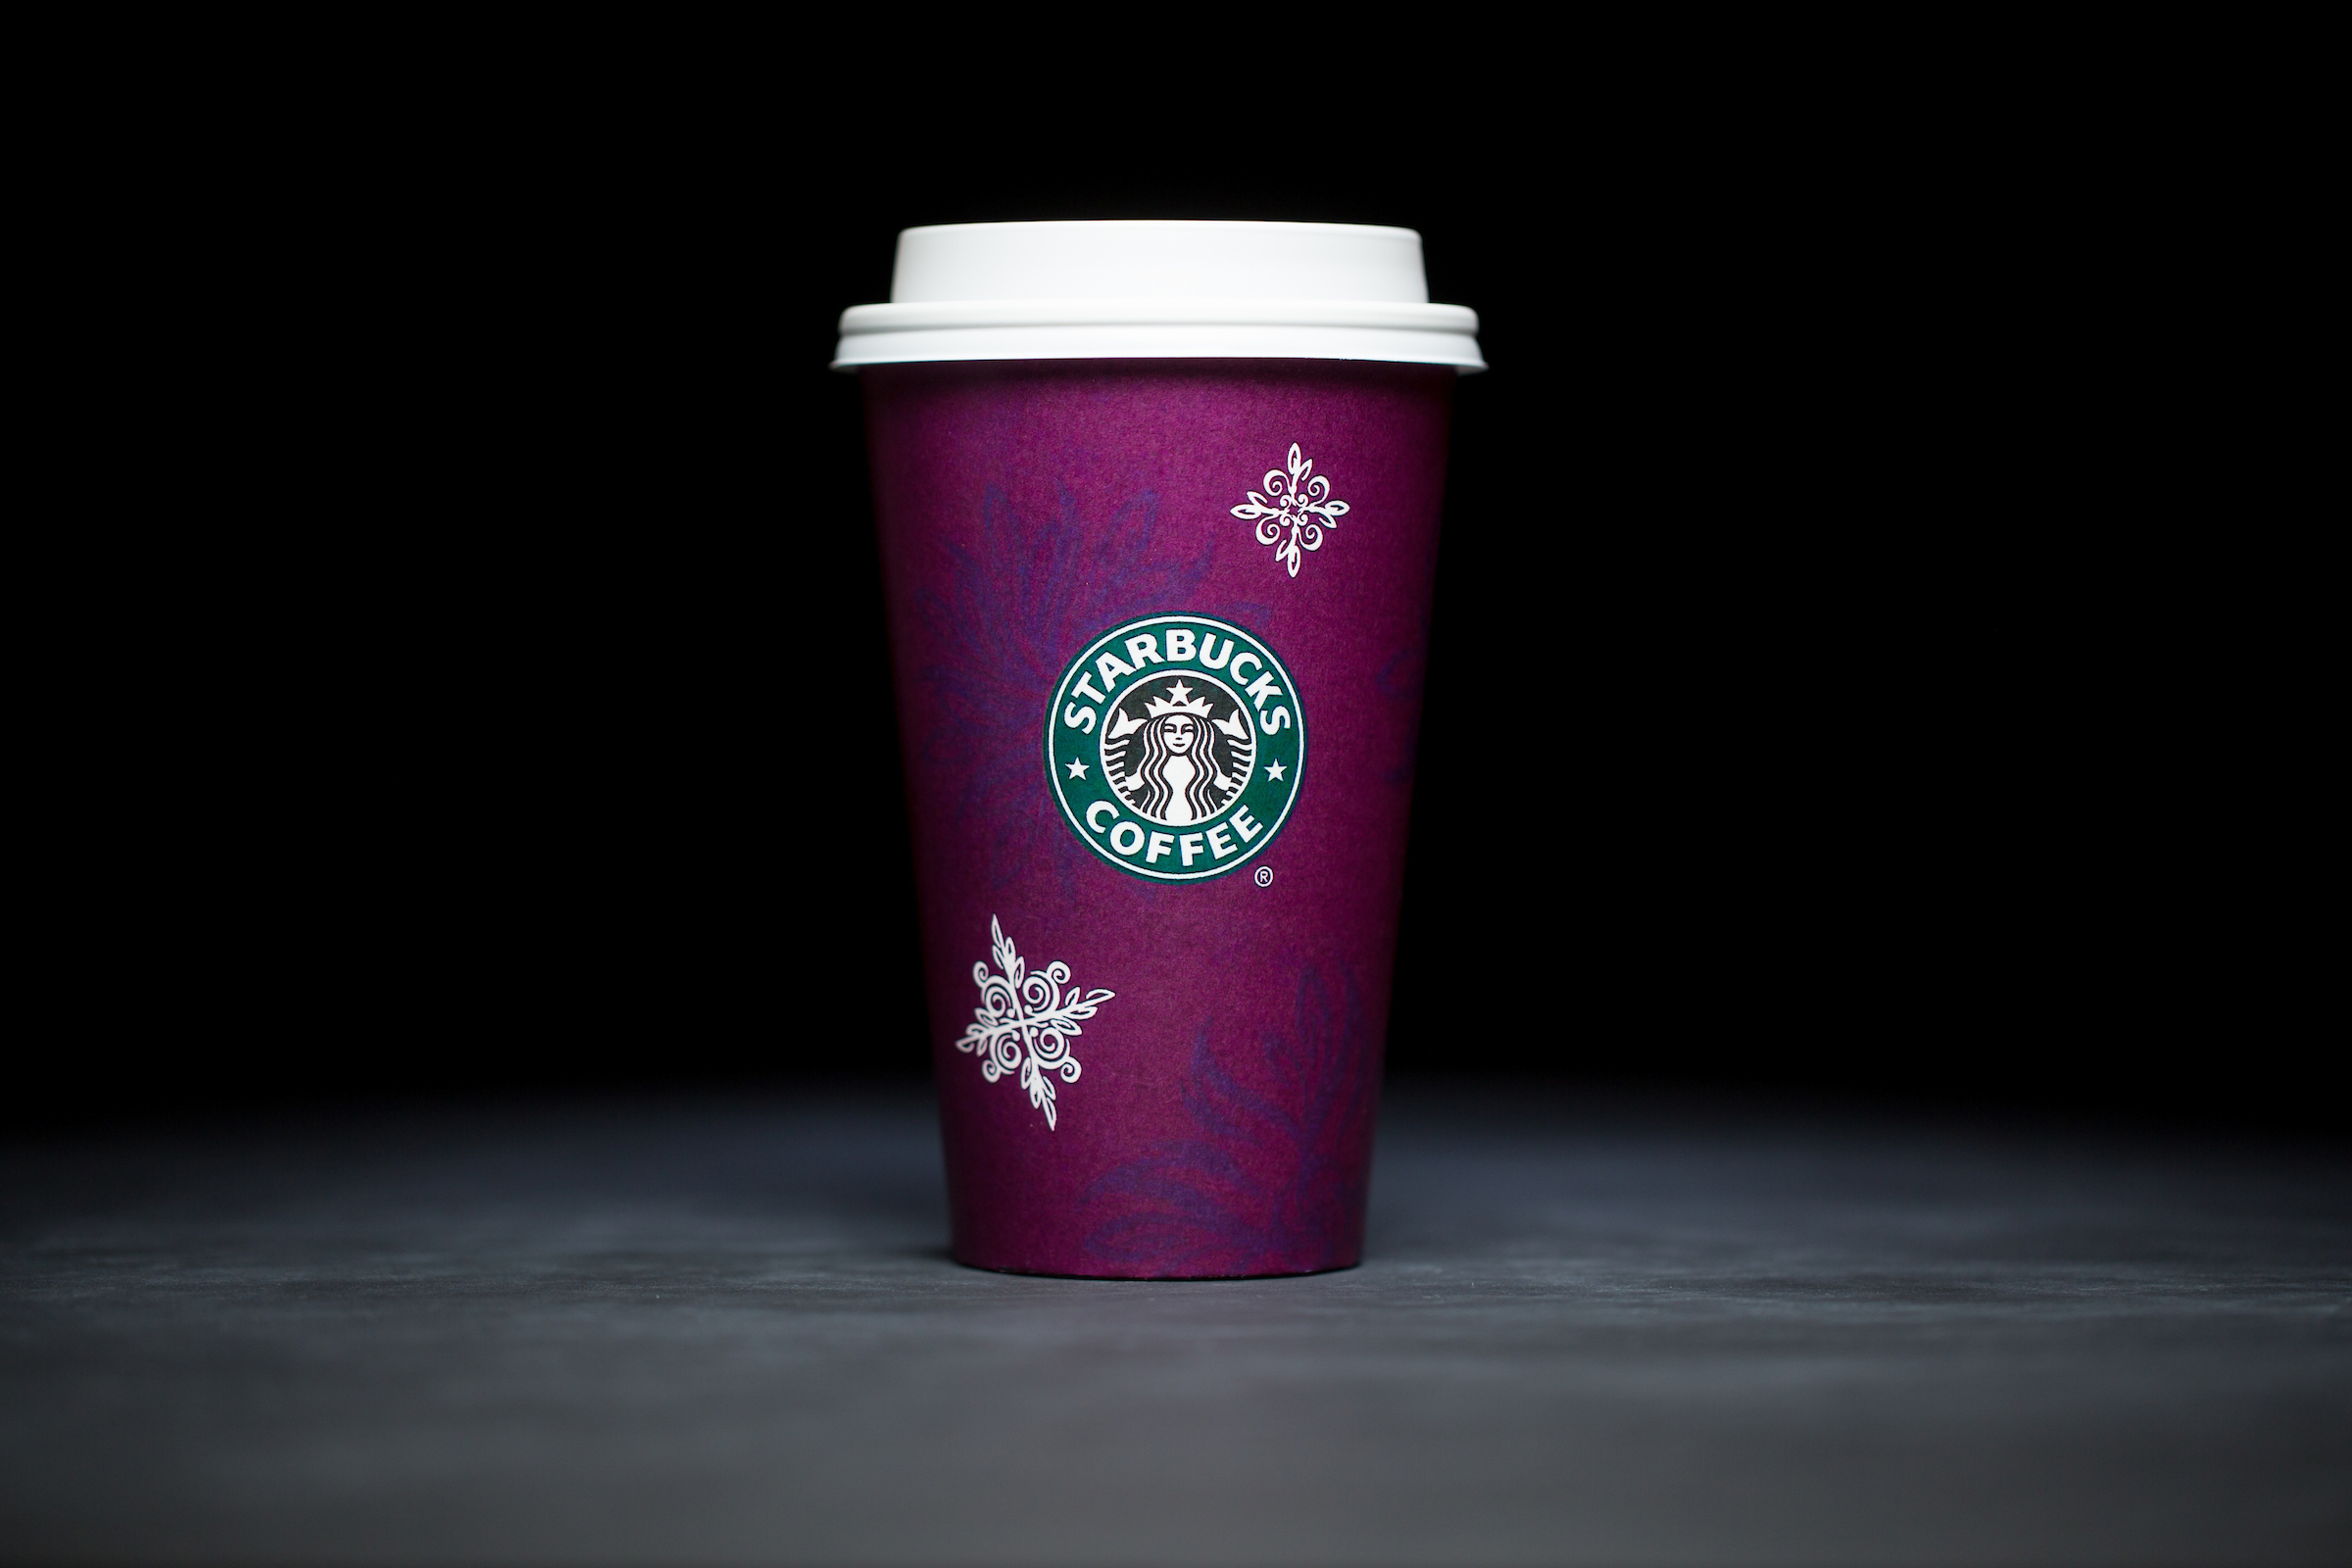 1998: For 20 years, Starbucks have released a range of holiday cup designs, most of them based around their world famous red cup. It's not easy to find the very first Starbucks holiday cups, which made their debut in stores in 1997. Few were saved, and electronic design files were lost in an earthquake in 2001. Even an Internet search is unyielding, with the cups having made their arrival long before the first selfie. But, we have them here! Click on for a photos of all 20 holidays cup designs. (Image: Joshua Trujillo/Cover Images)<p></p>